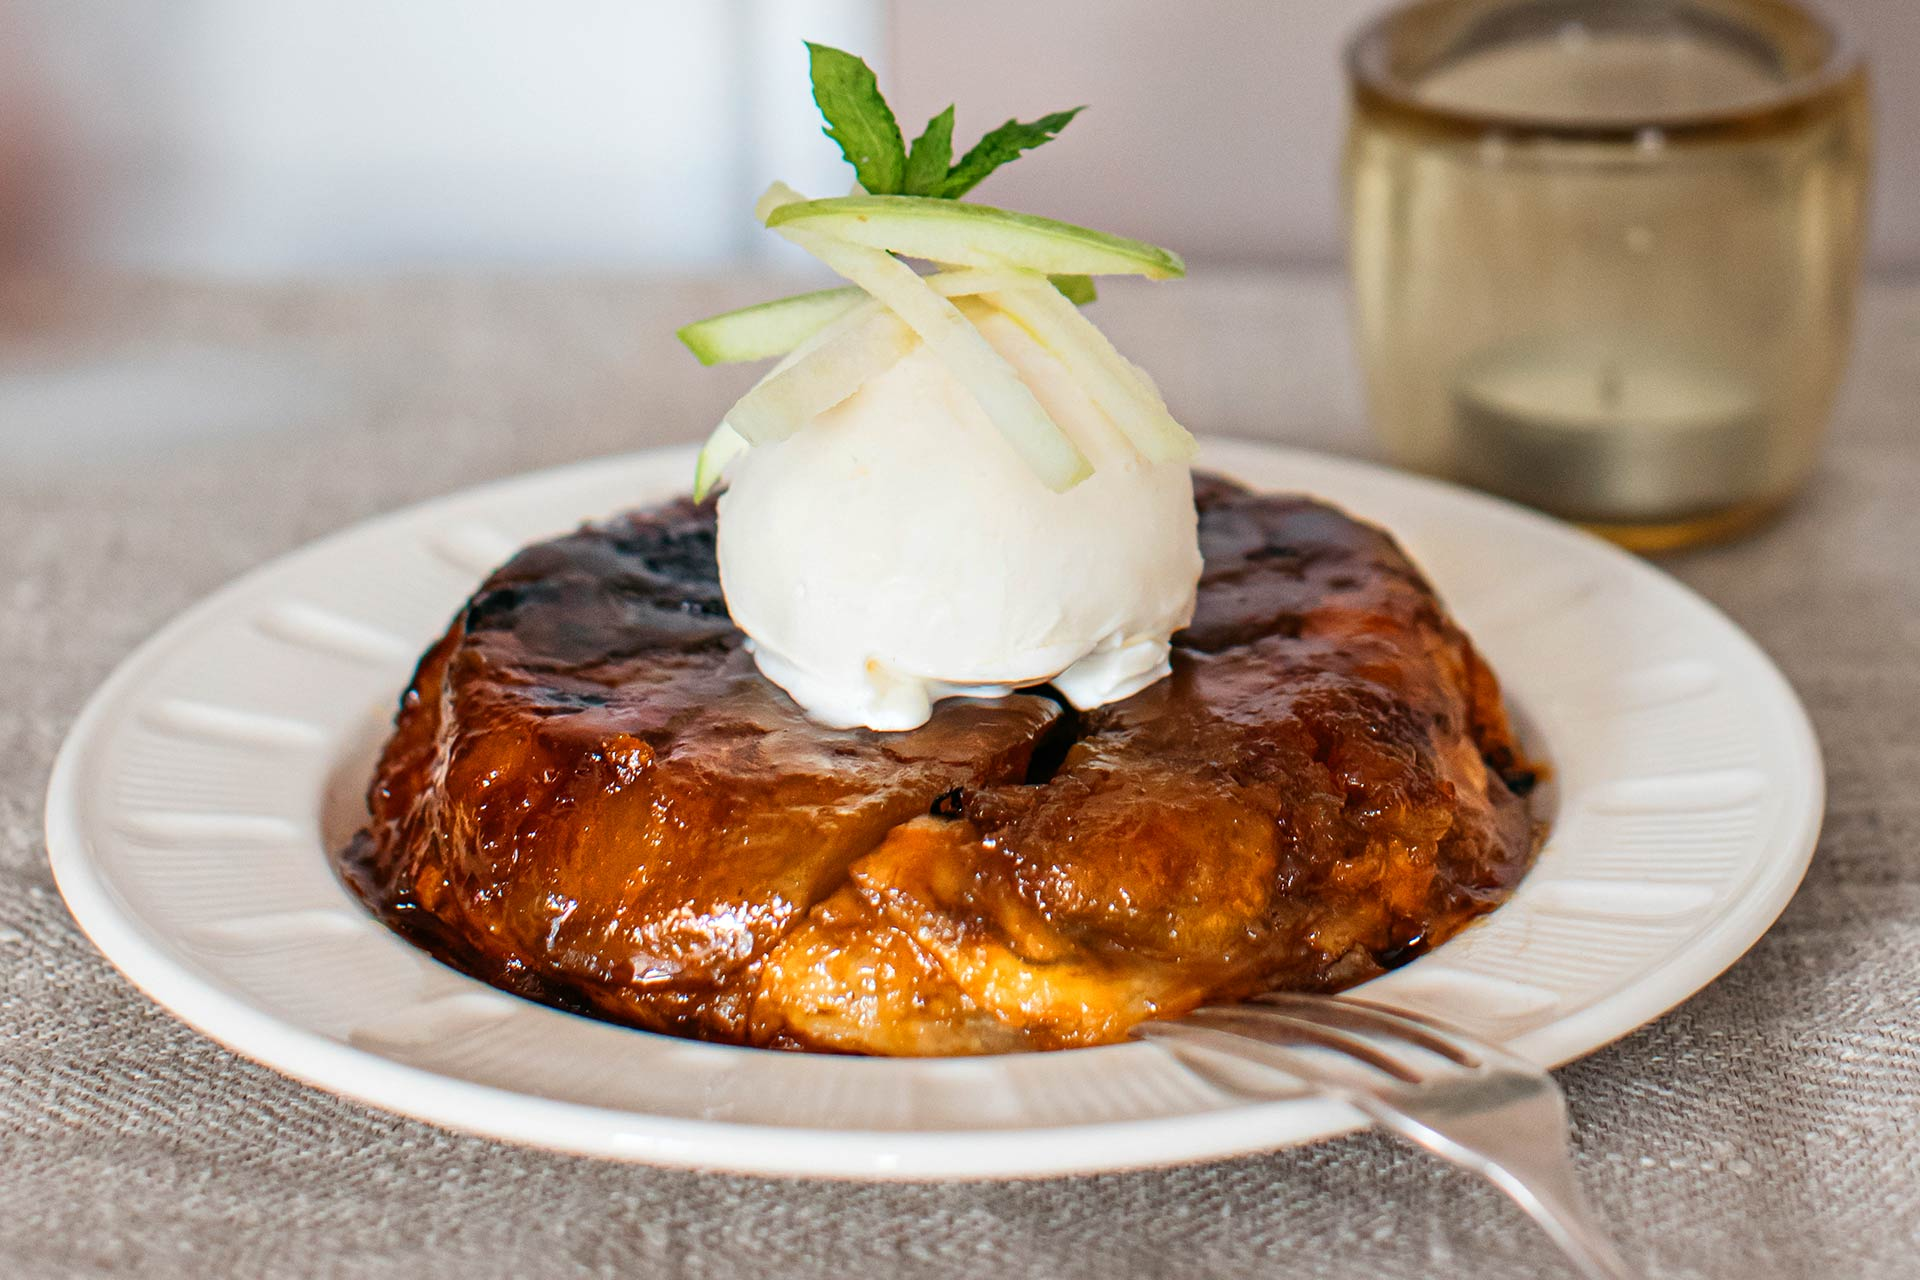 apple-tarte-tatin-romney-restaurant-recipe.jpg